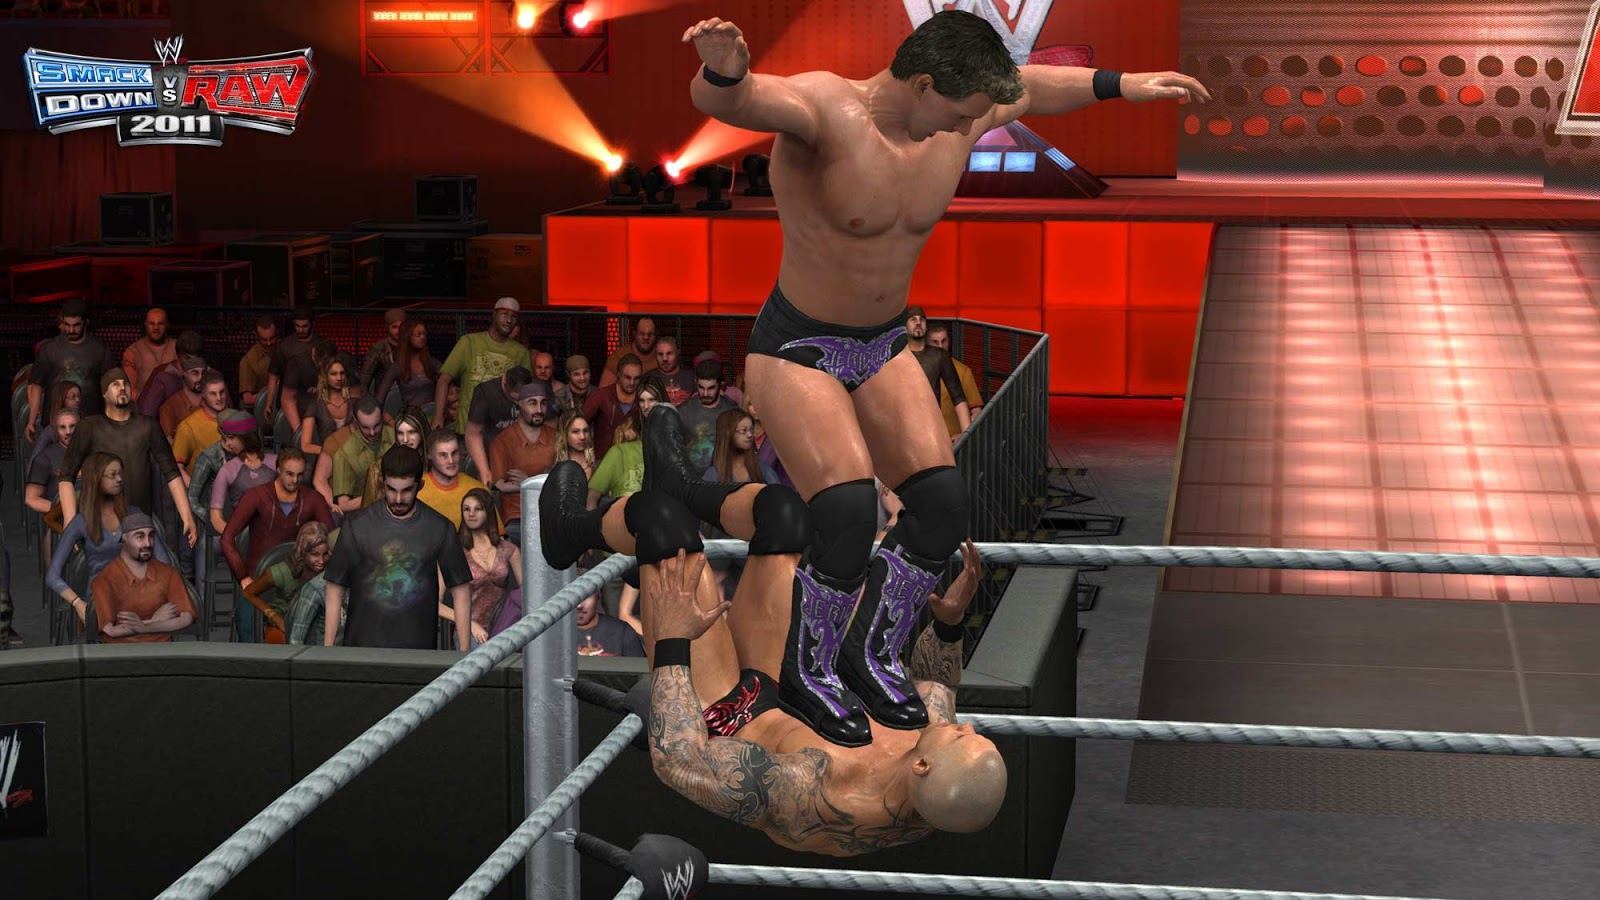 Wwe raw 2007 game setup download for pc version